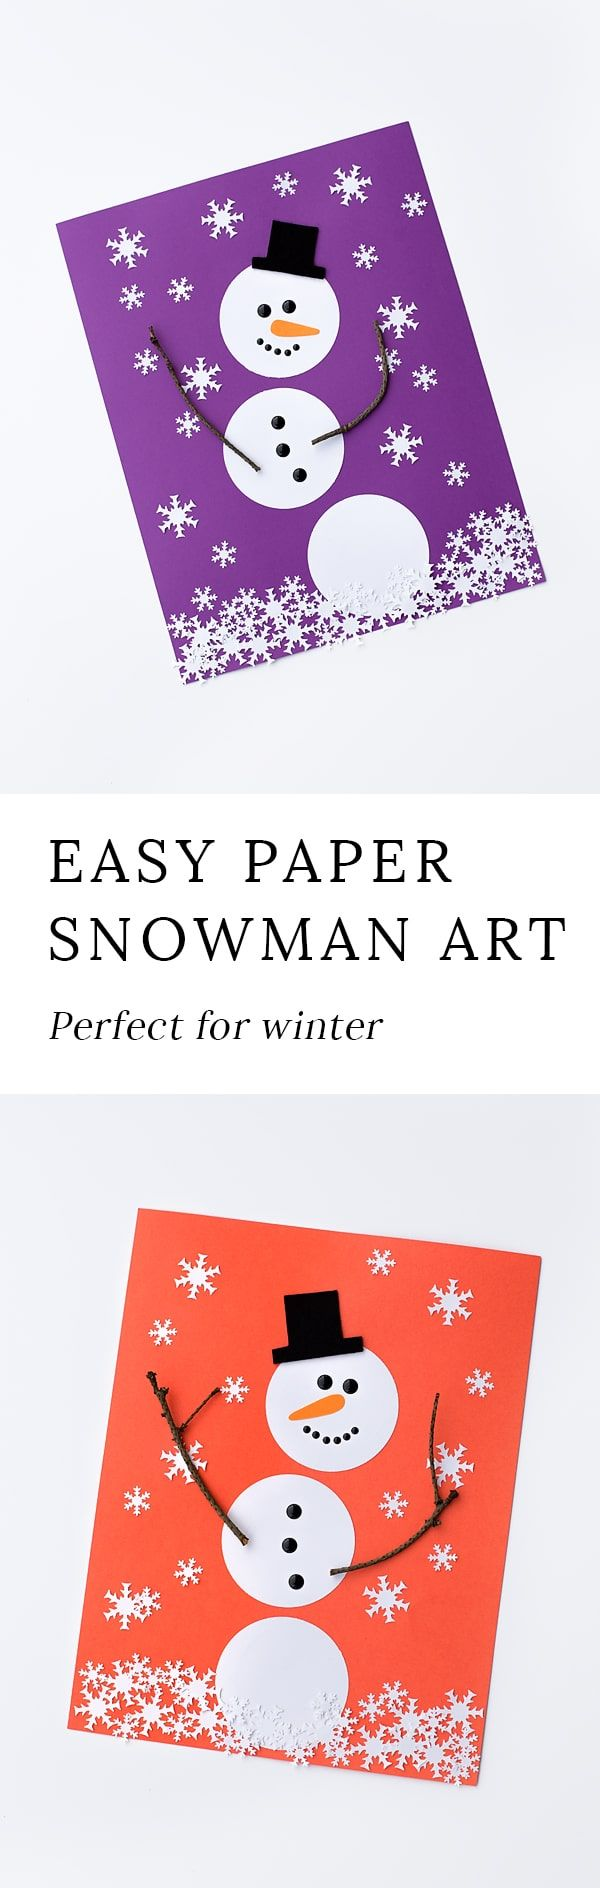 Winter is the perfect season for snowman crafts! Whether kids are learning about snow and snowflakes or simply enjoying a winter craft at home, this open-ended paper snowman craft is a fun way to extend your winter unit. #wintercrafts #snowmancrafts #kidscrafts #papercrafts #teacherspayteachers via @https://www.pinterest.com/fireflymudpie/